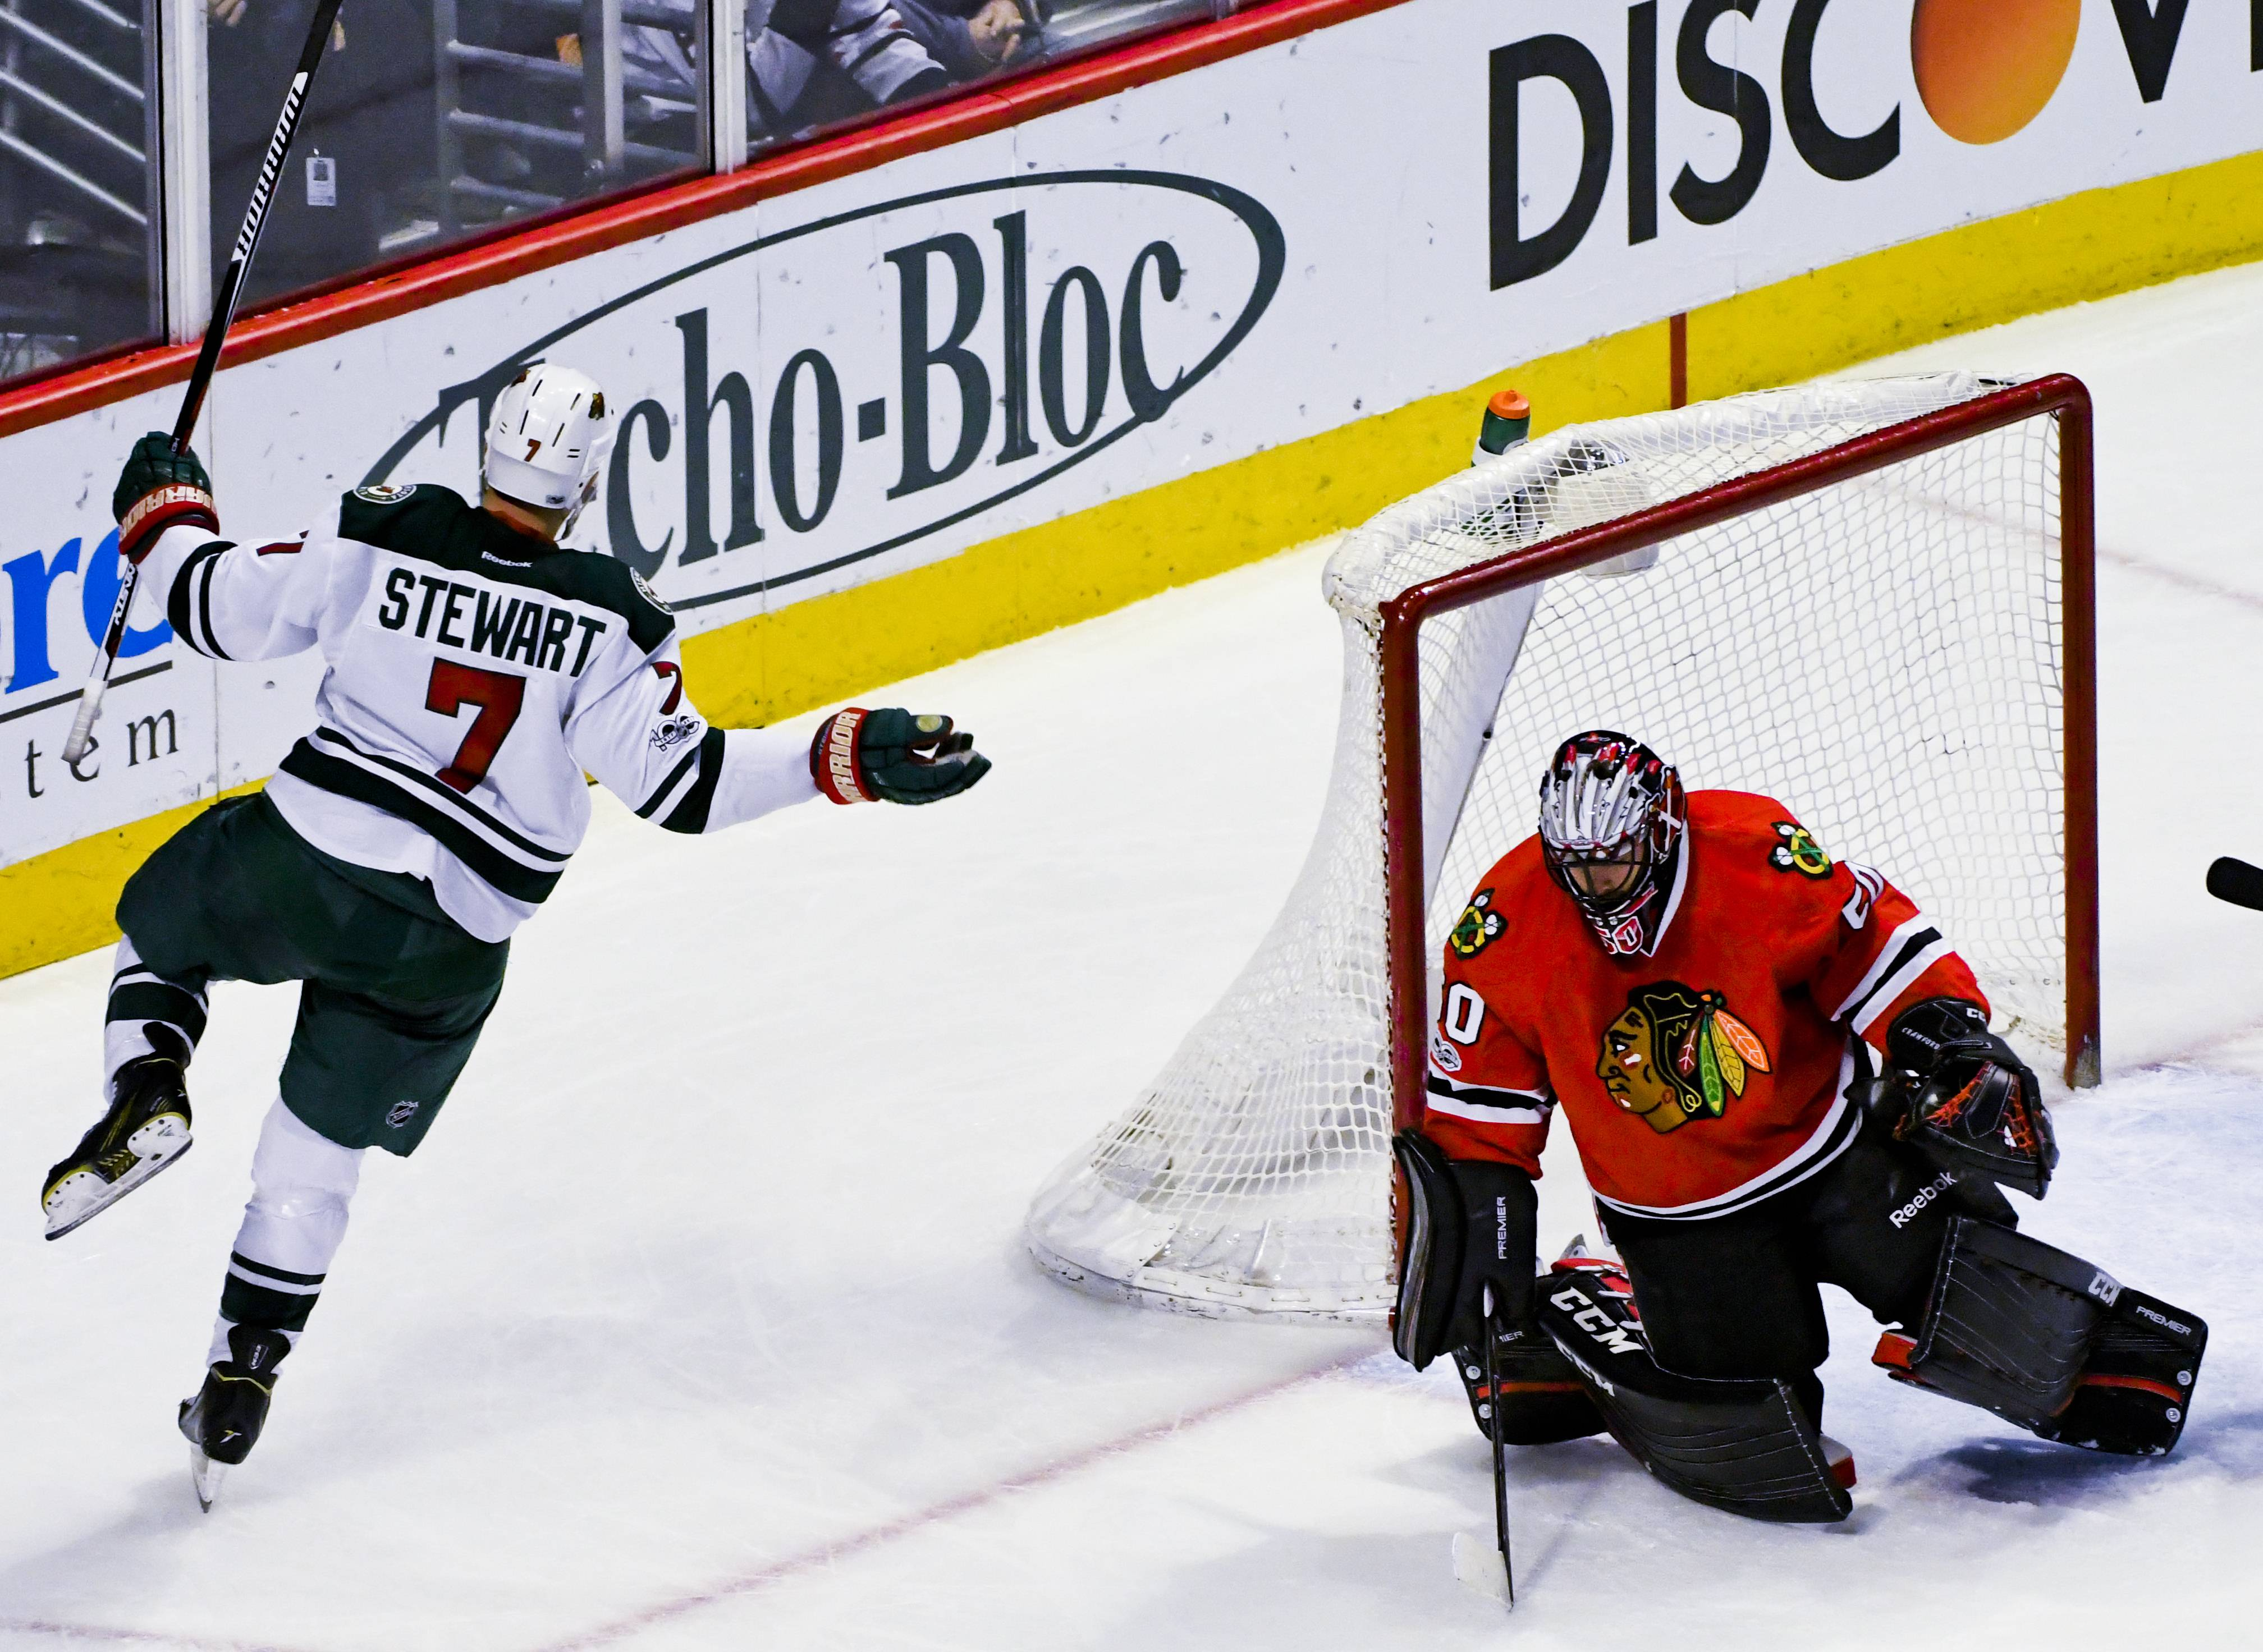 Minnesota Wild right wing Chris Stewart (7) celebrates his goal as Chicago Blackhawks goalie Corey Crawford (50) looks on during the second period of an NHL hockey game on Sunday, Jan. 15, 2017, in Chicago. (AP Photo/Matt Marton)